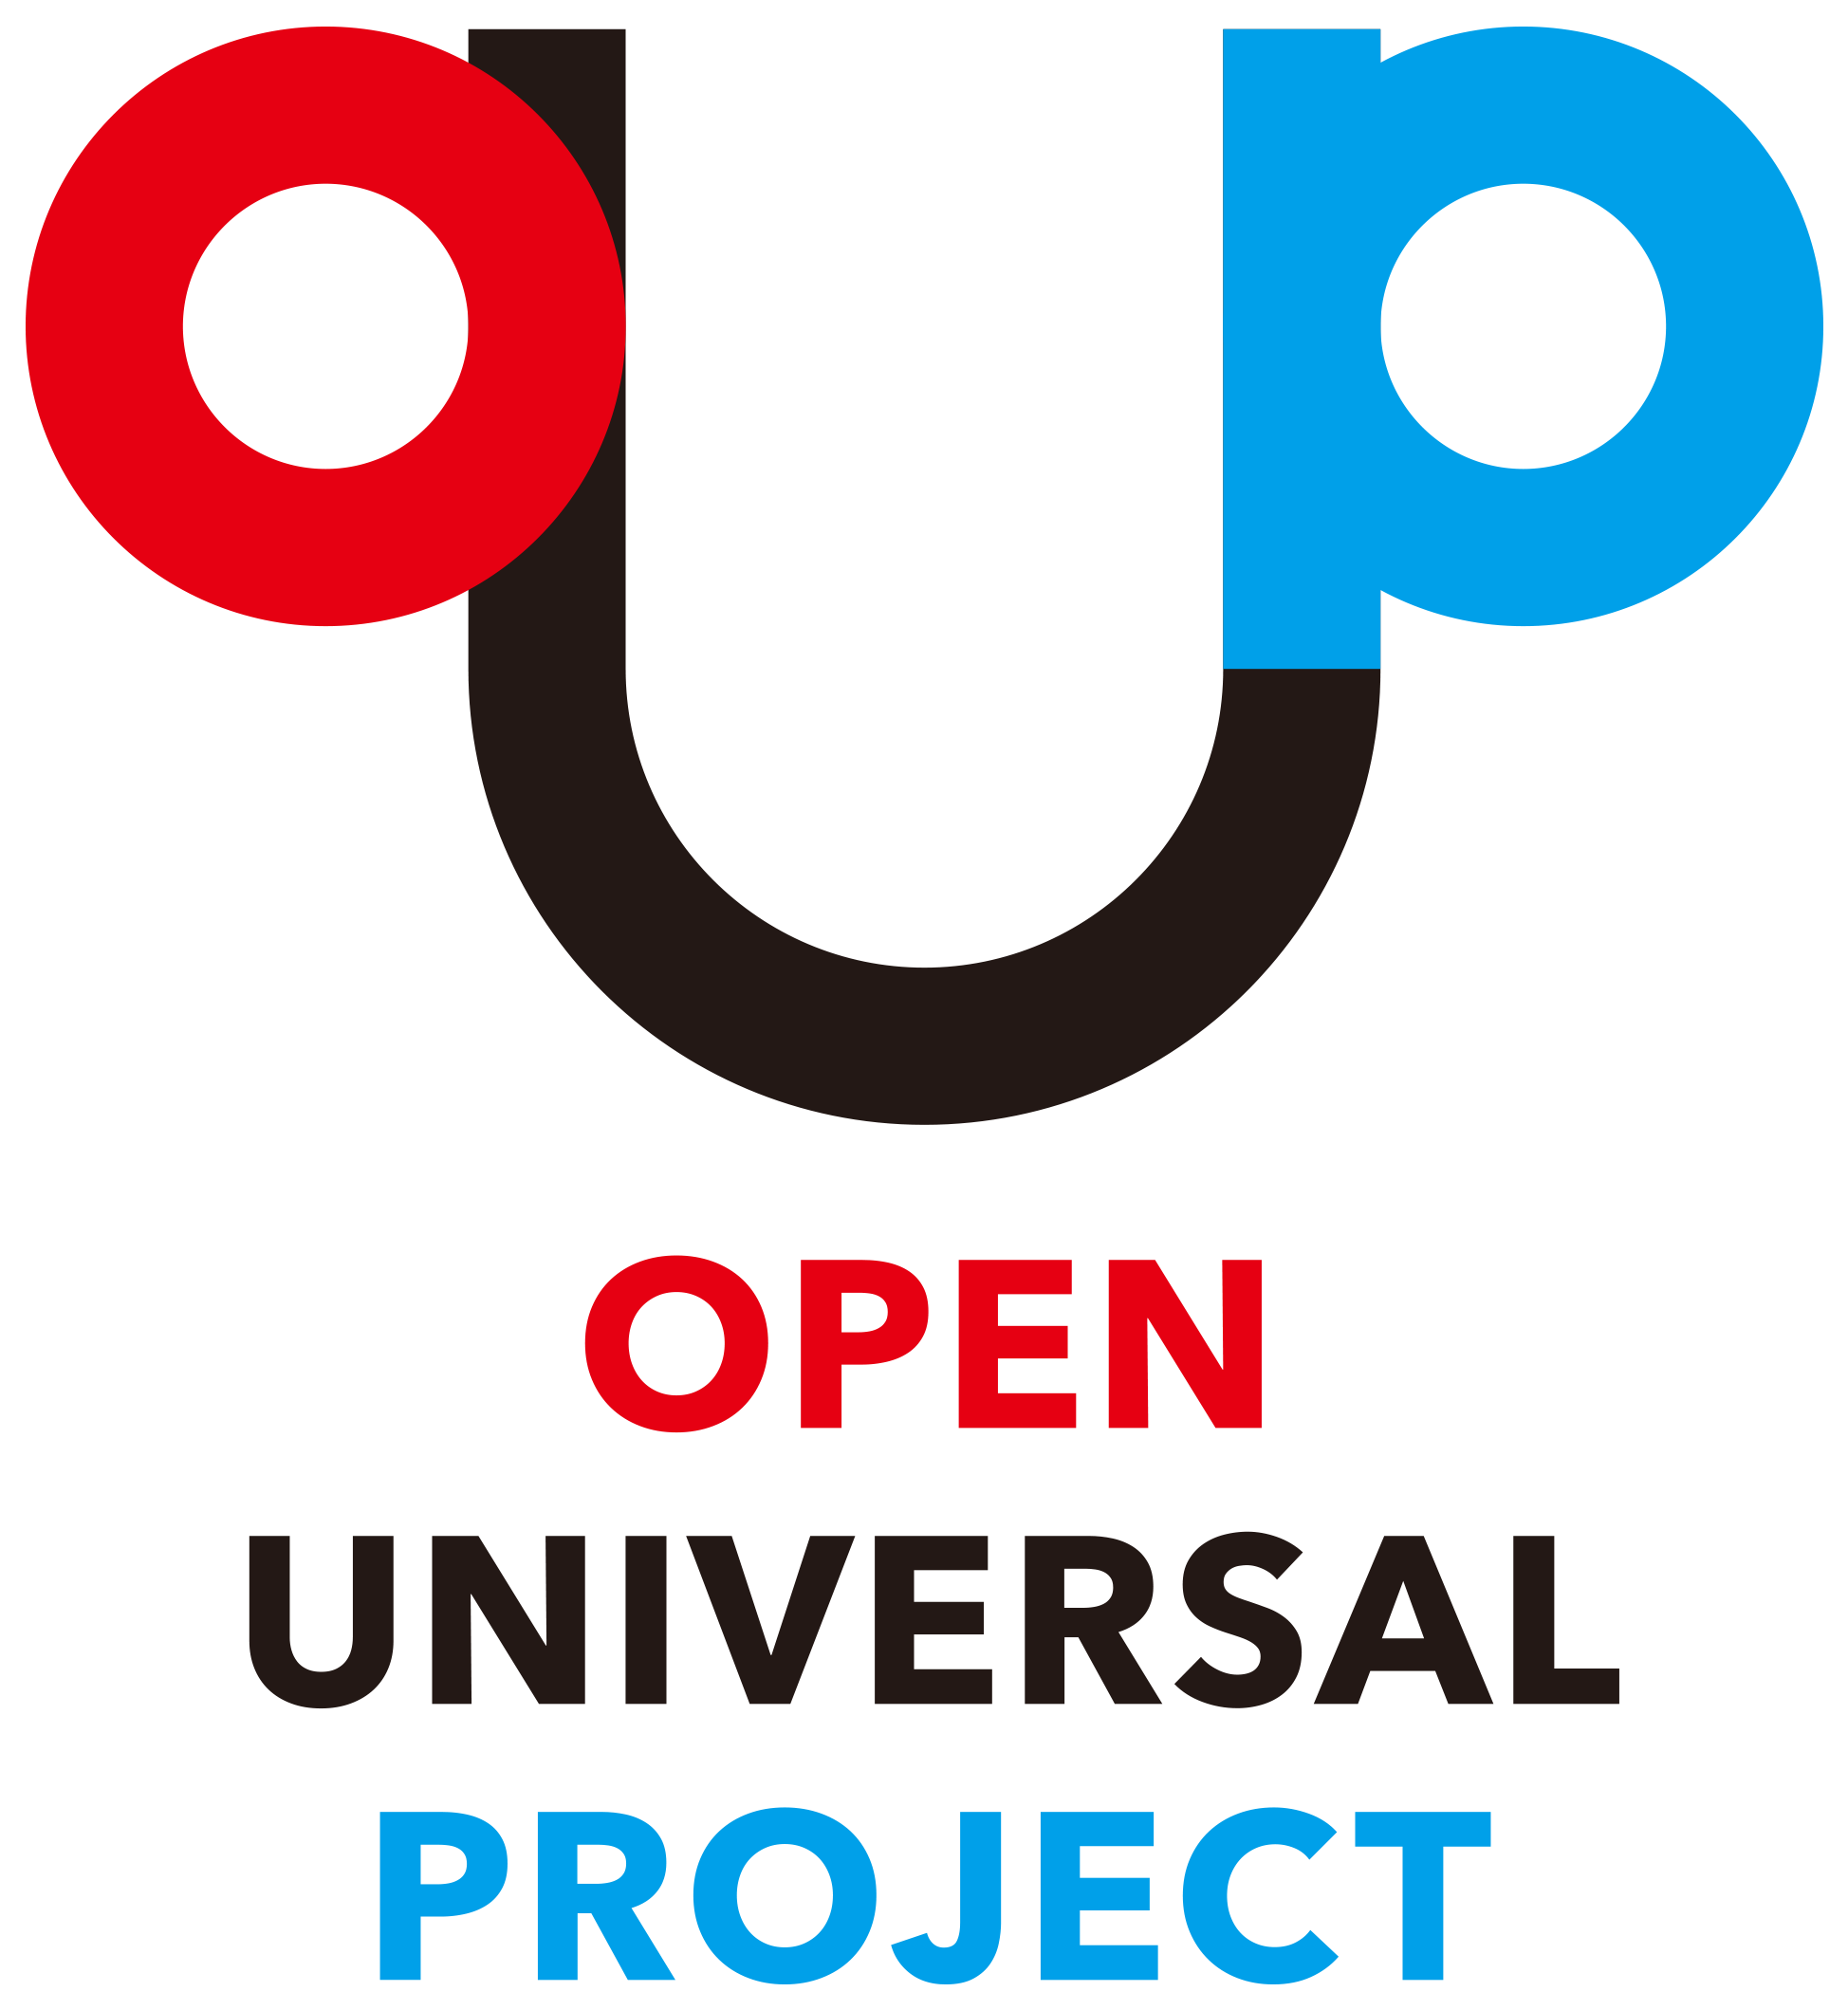 OPEN UNIVERSAL PROJECT